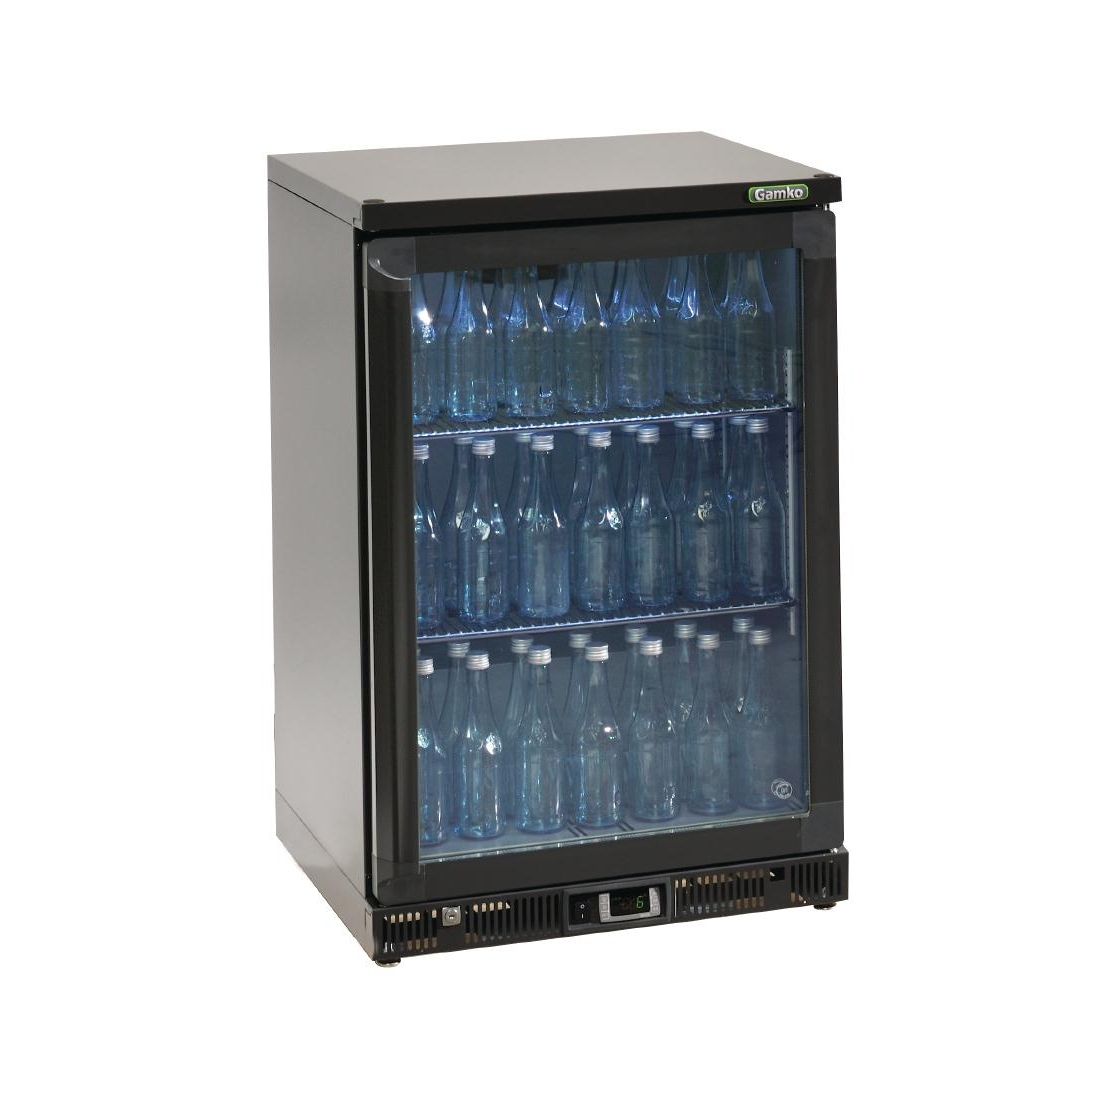 Gamko Bottle Cooler - Single Hinged Door 150 Ltr Black